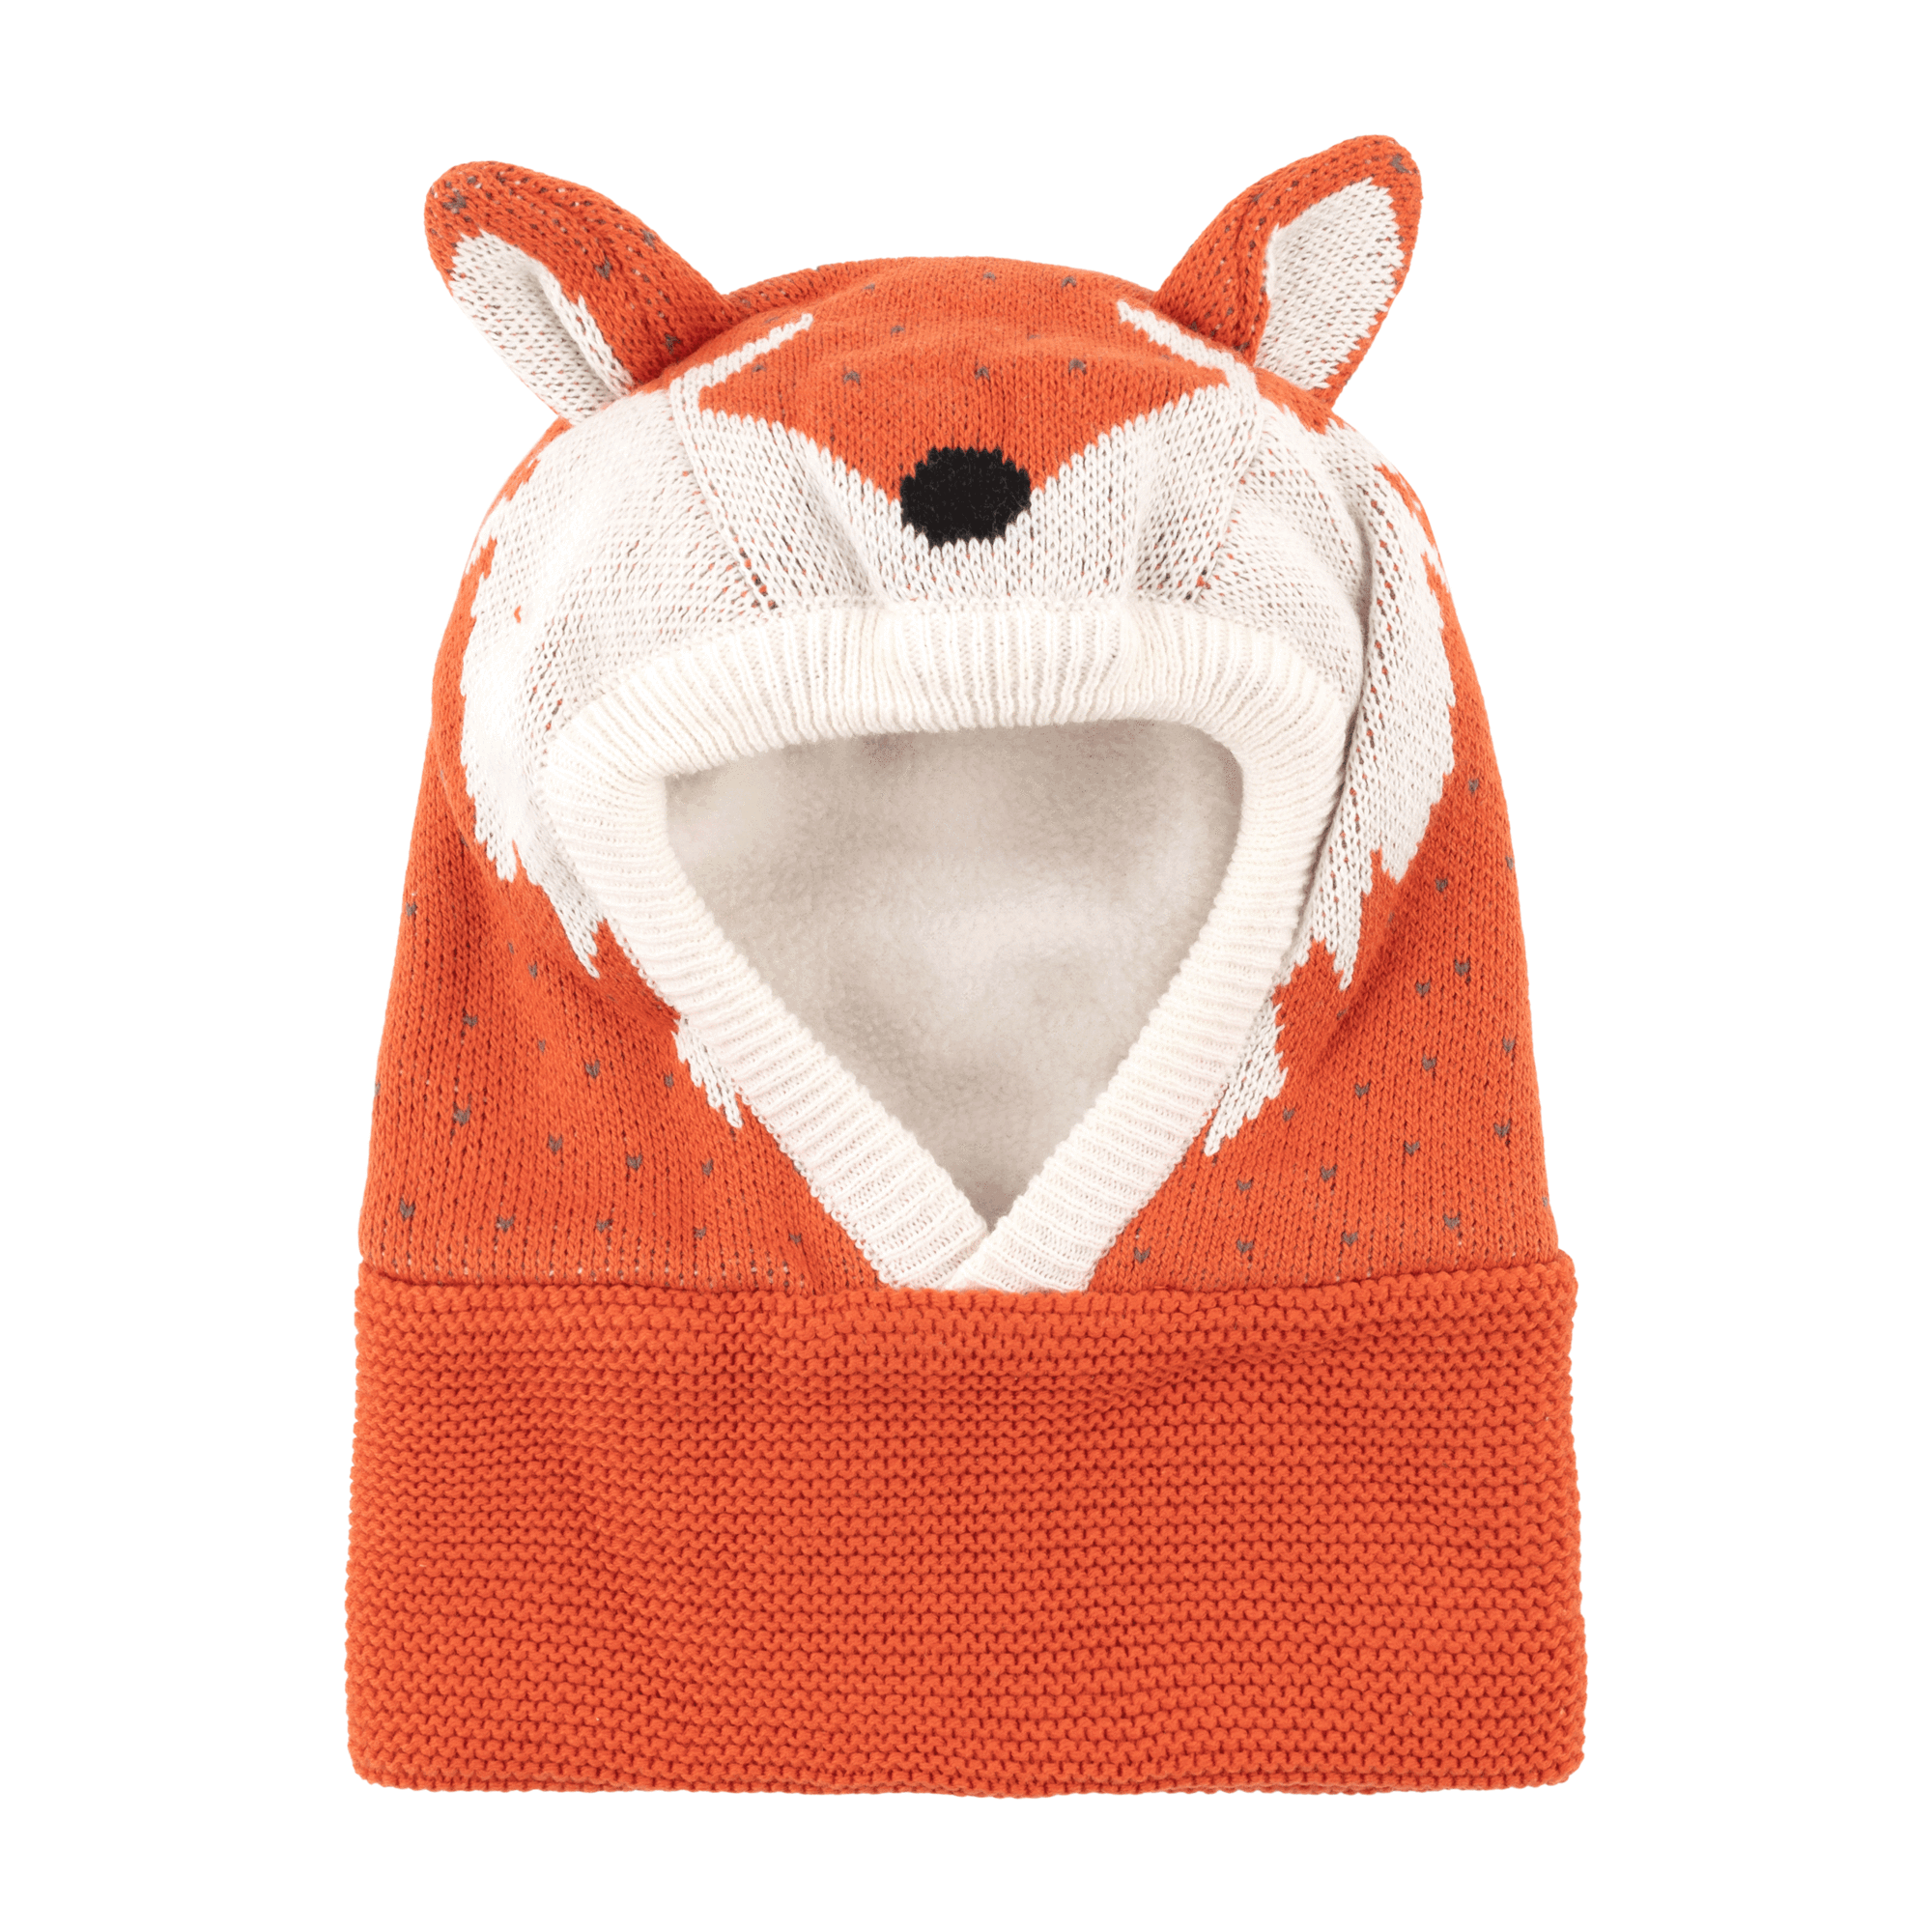 ZOOCCHINI Baby / Toddler Knit Balaclava Hat - Fox